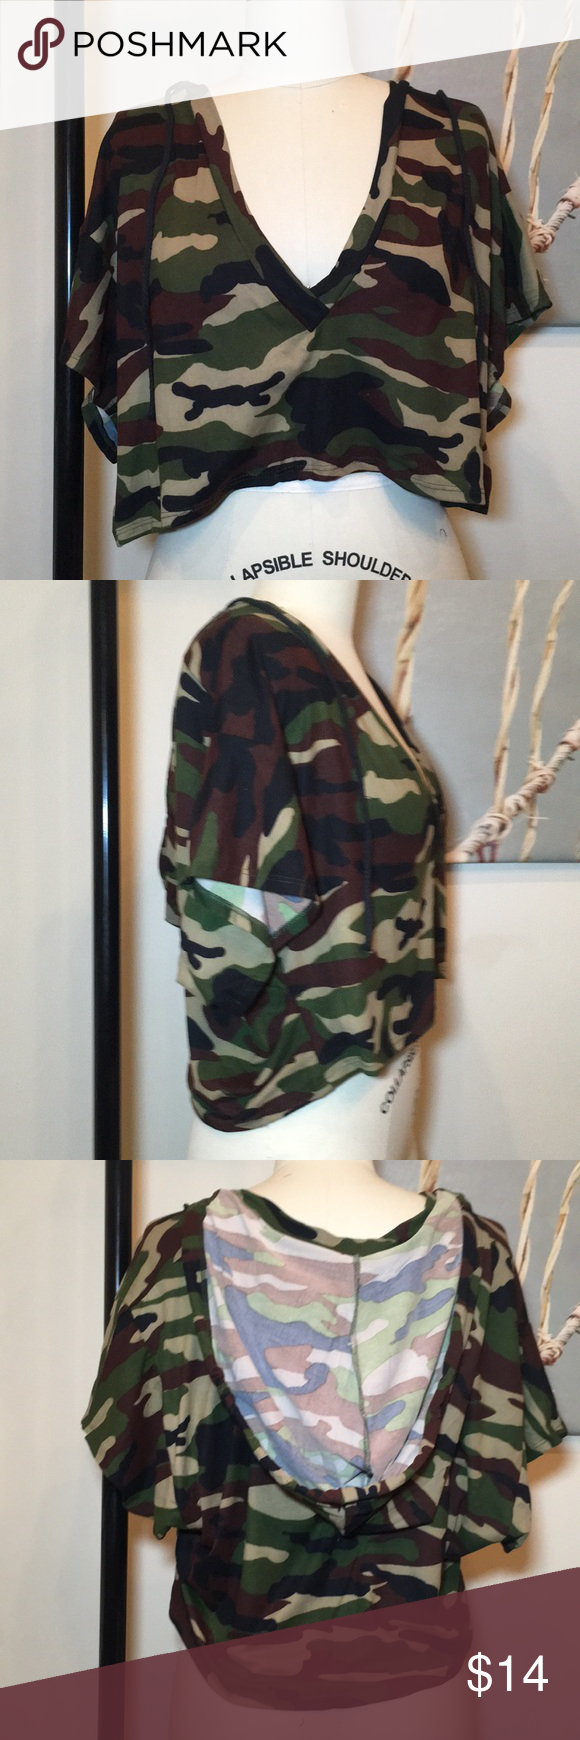 5f0ce4d62f6dad NWT Camo cropped hoodie This is seriously the softest light weight hoodie  you ll ever own. Cropped